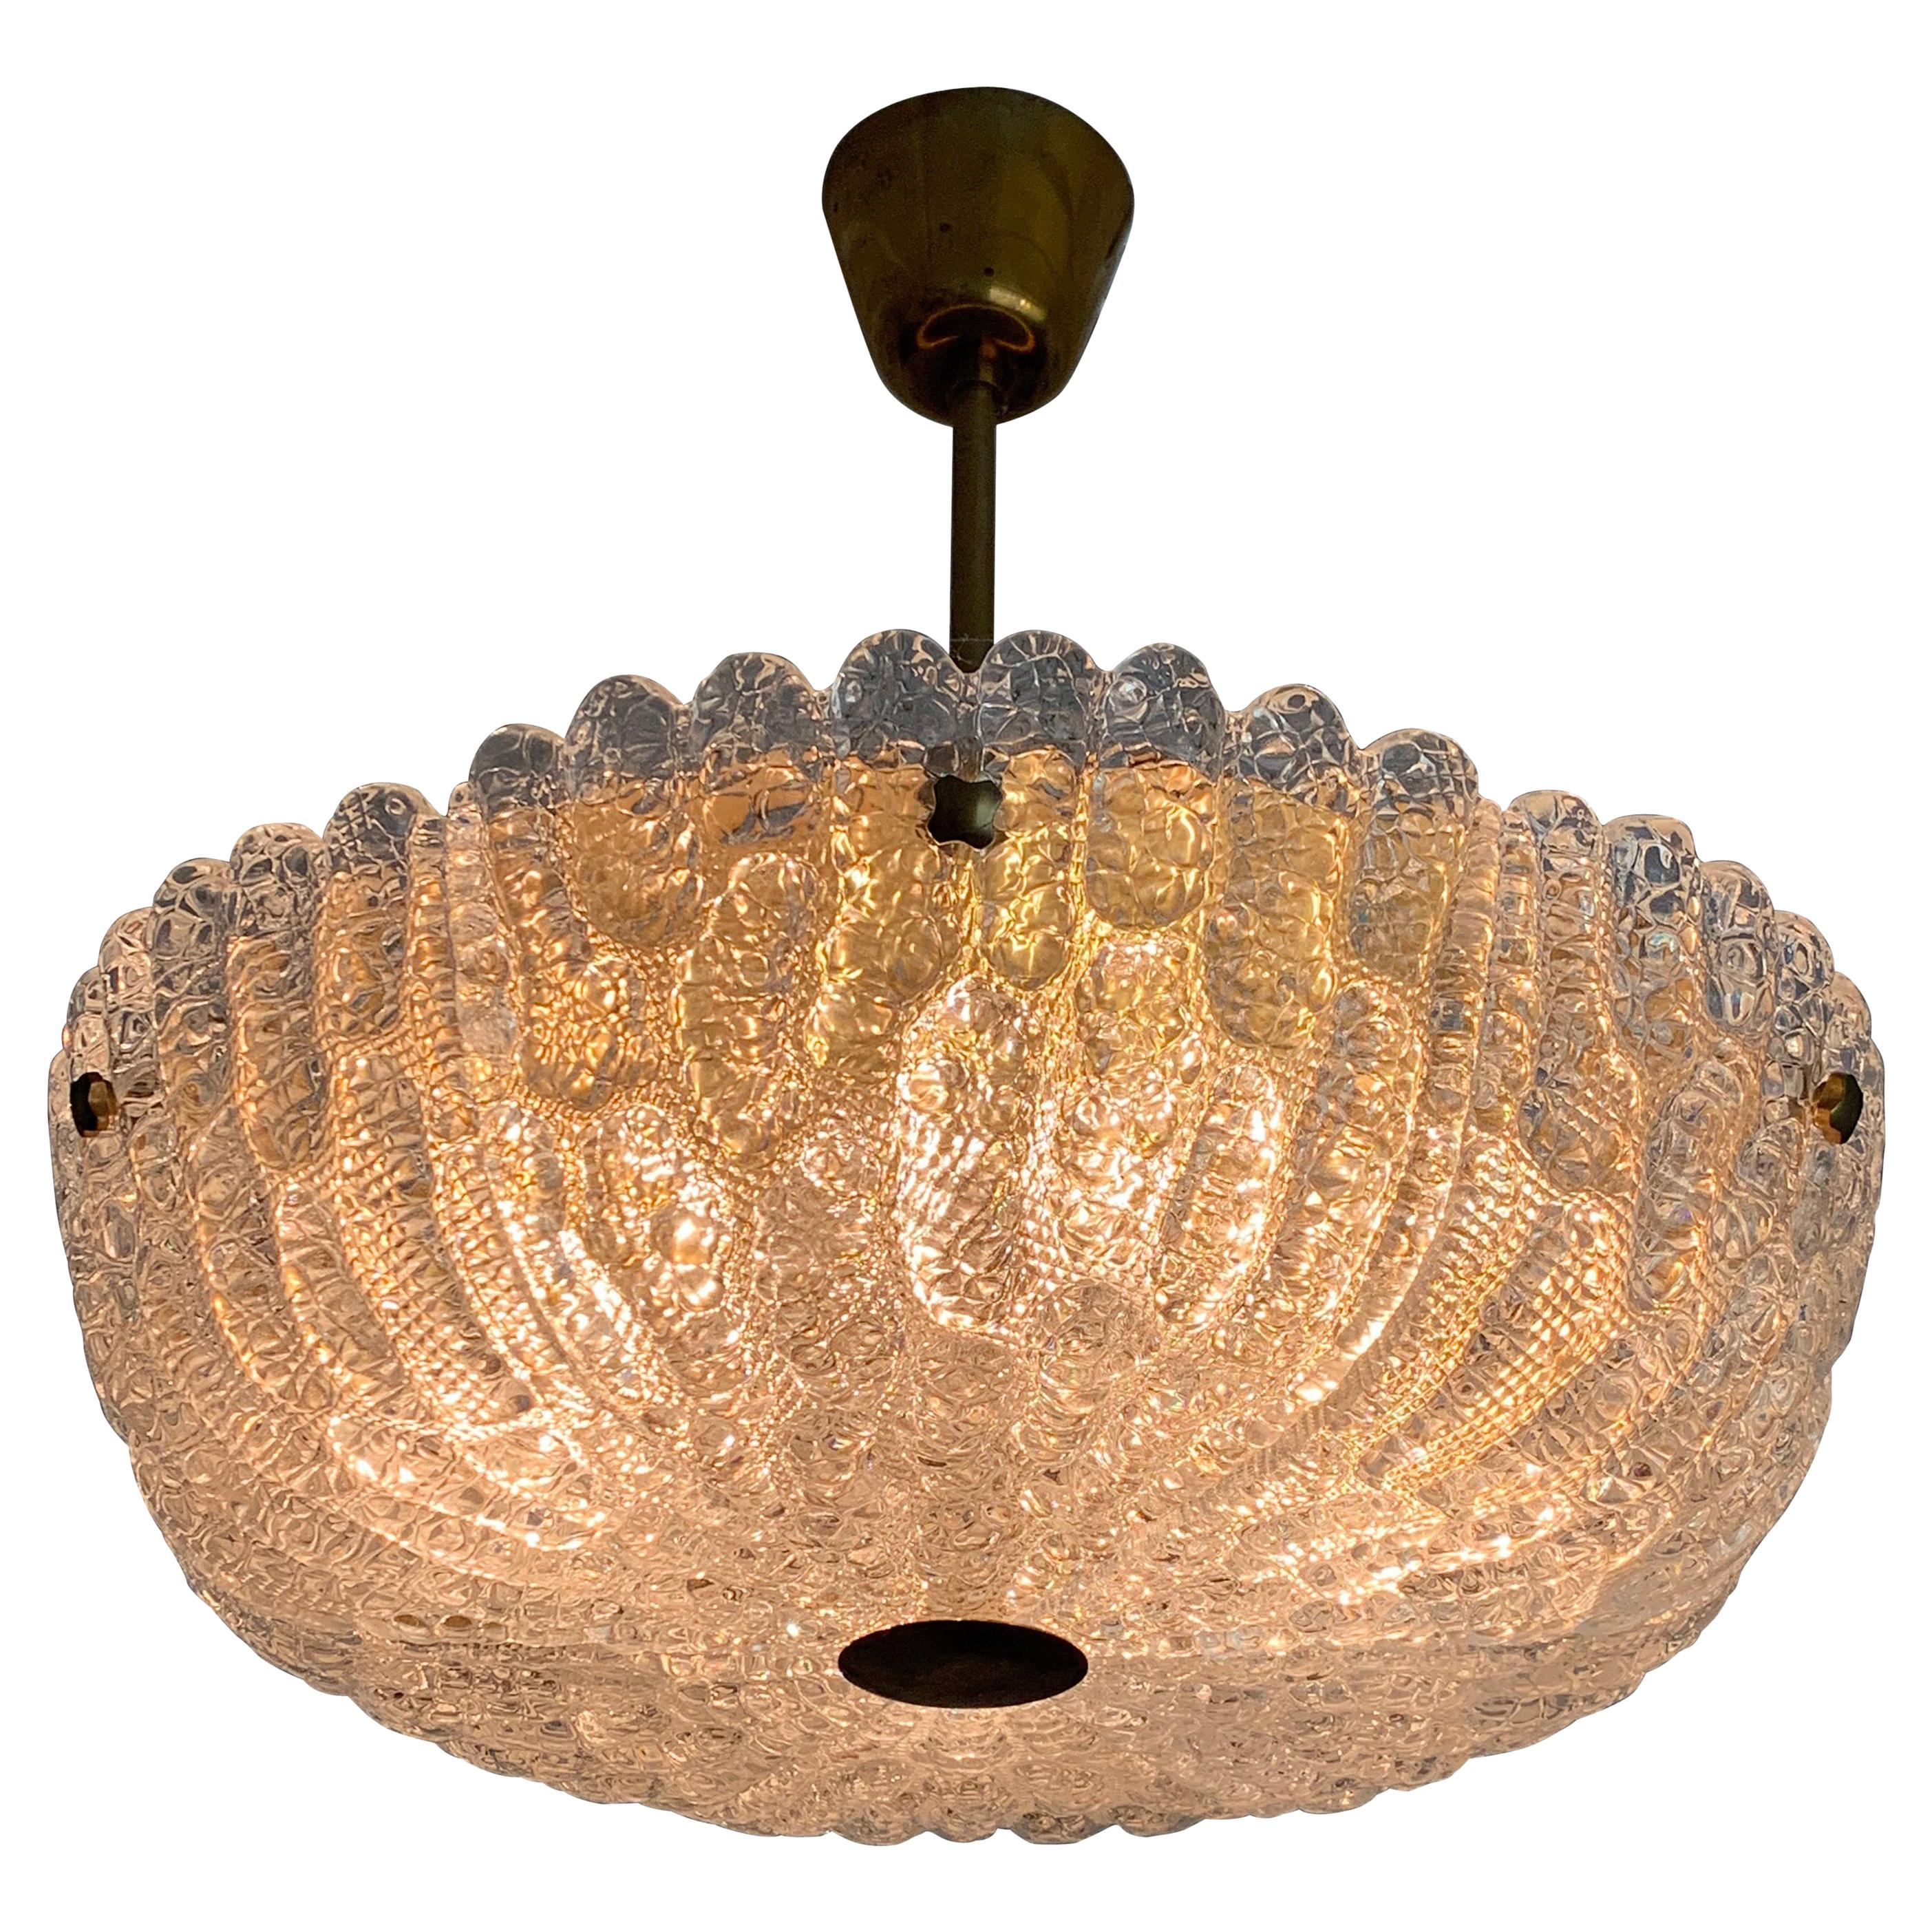 Orrefors Chandelier by Carl Fagerlund Crystal and Brass, Orrefors Sweden, 1960